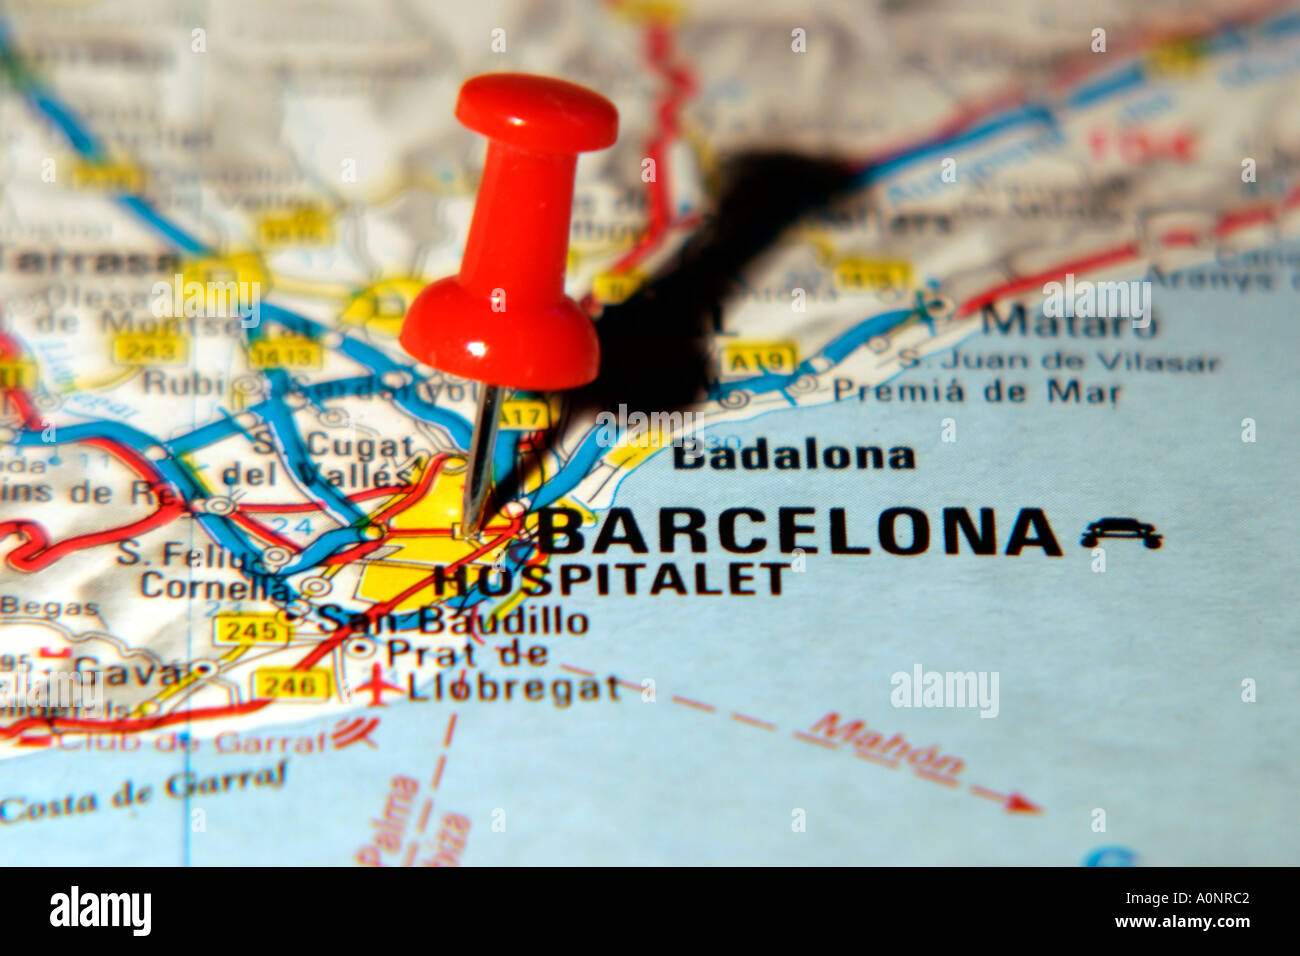 Map Pin pointing to Barcelona on a road map Stock Photo 3277761 Alamy